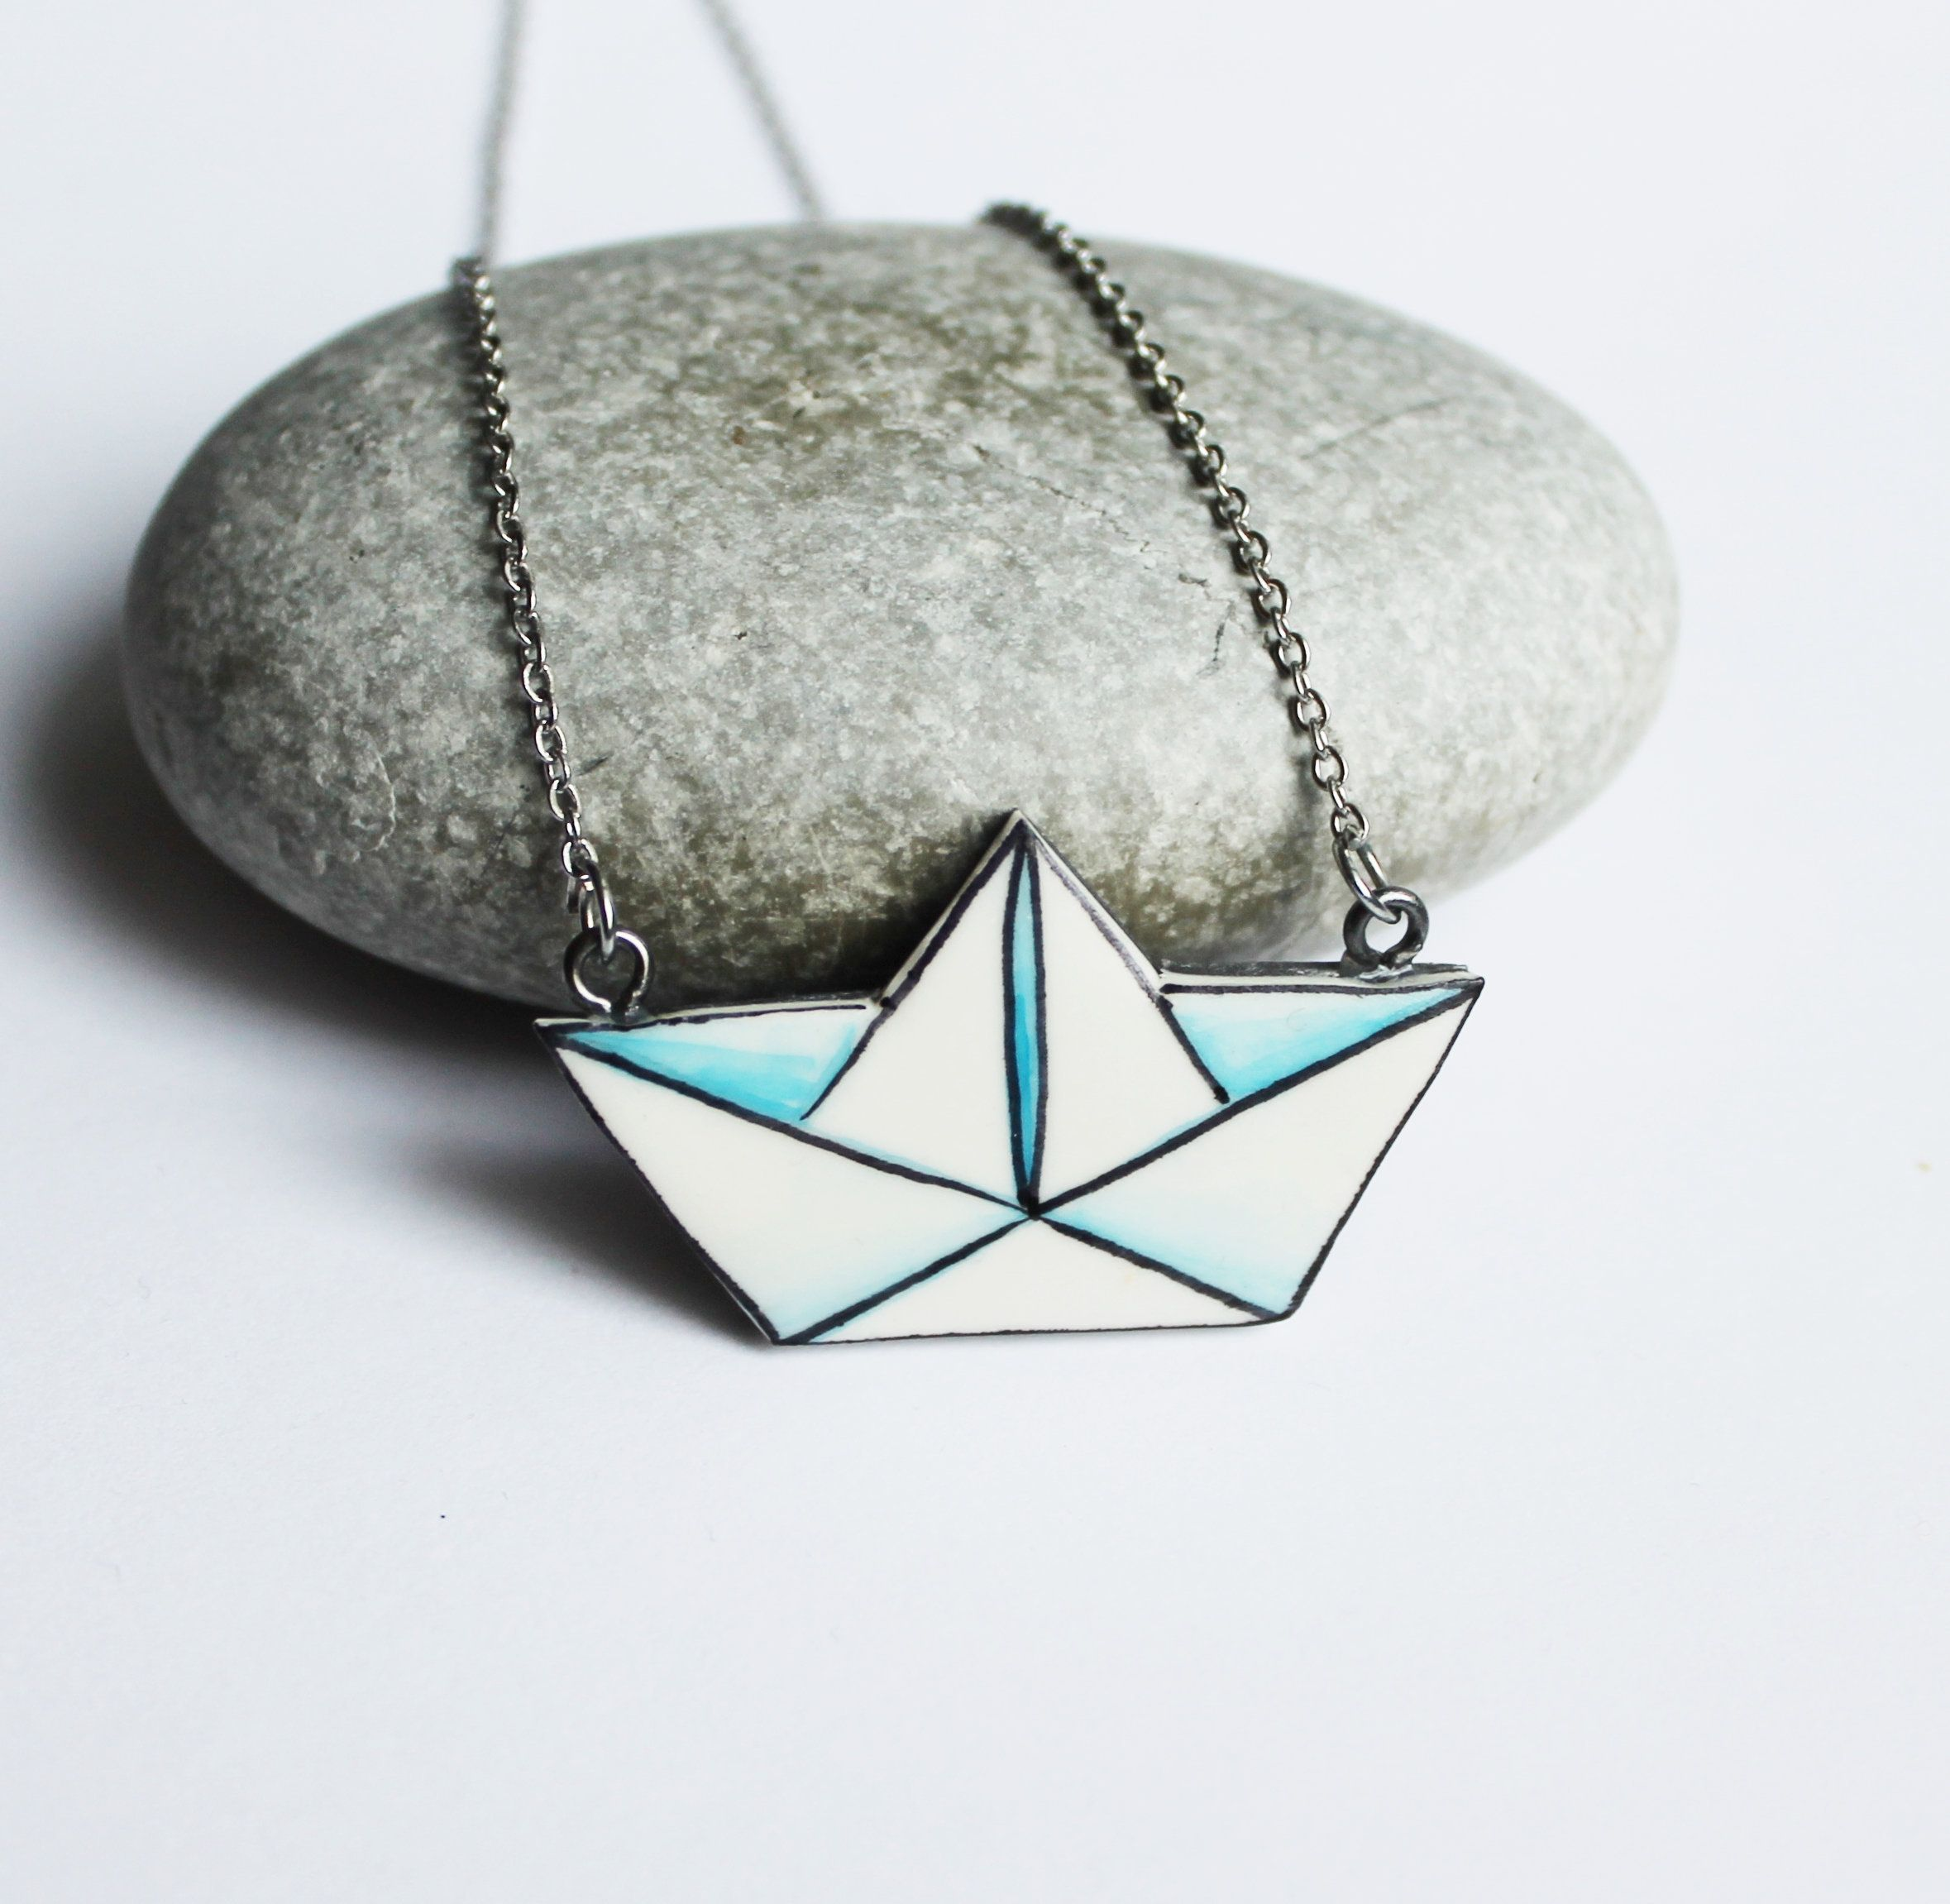 Origami Paper Boat Handmade Polymer Clay Minimalist Brooch  Unique Hand Painted Pin Gift